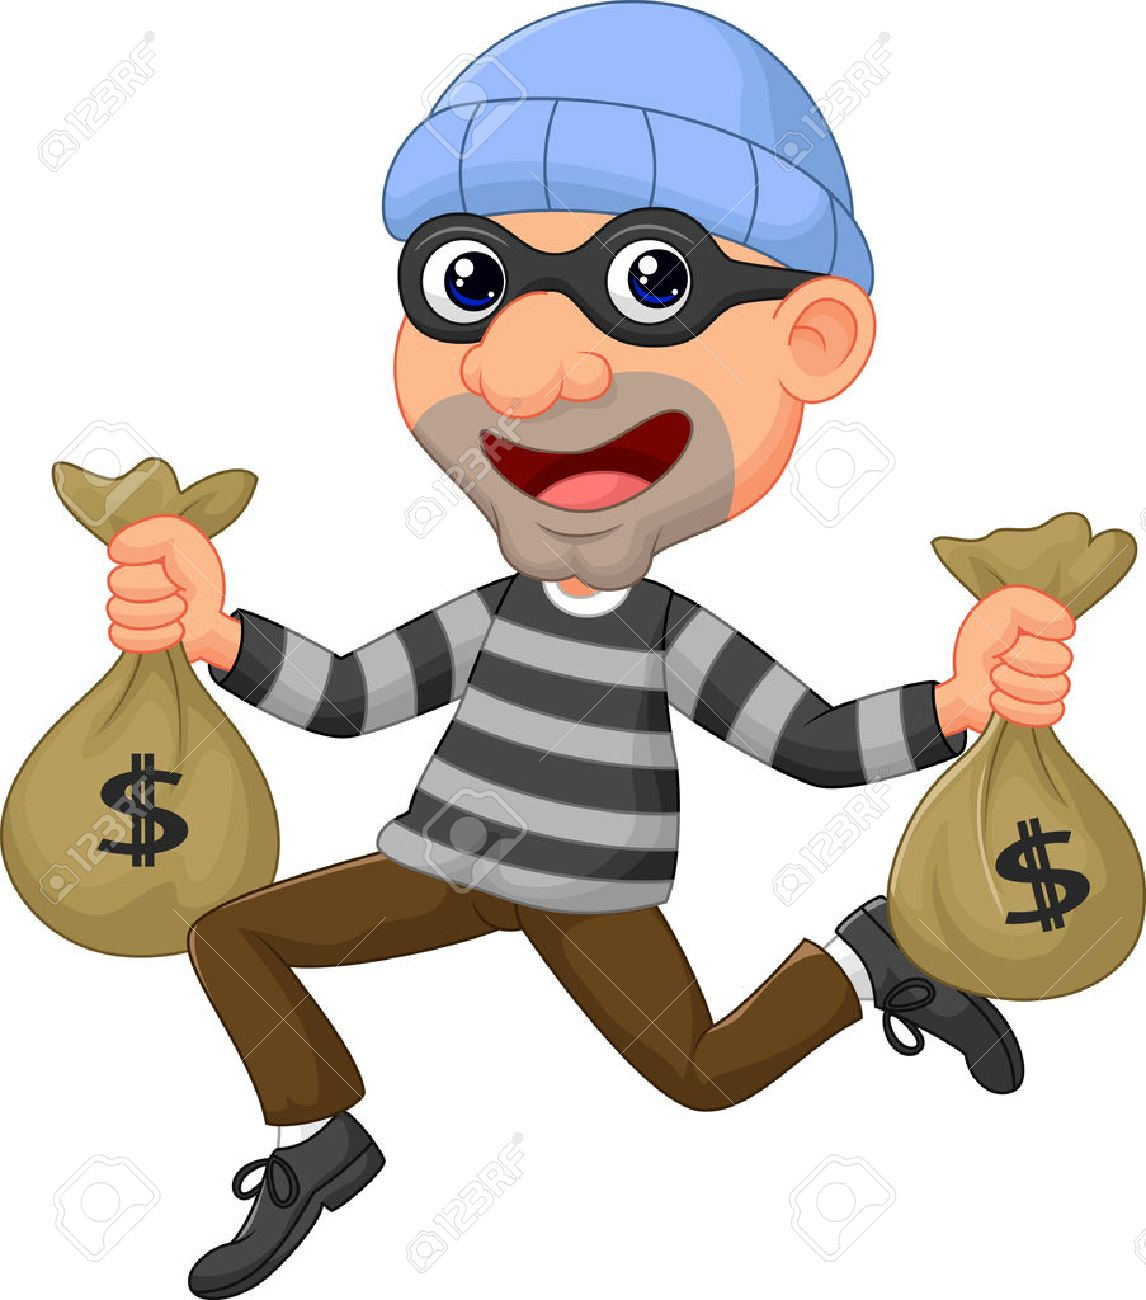 Image result for thief